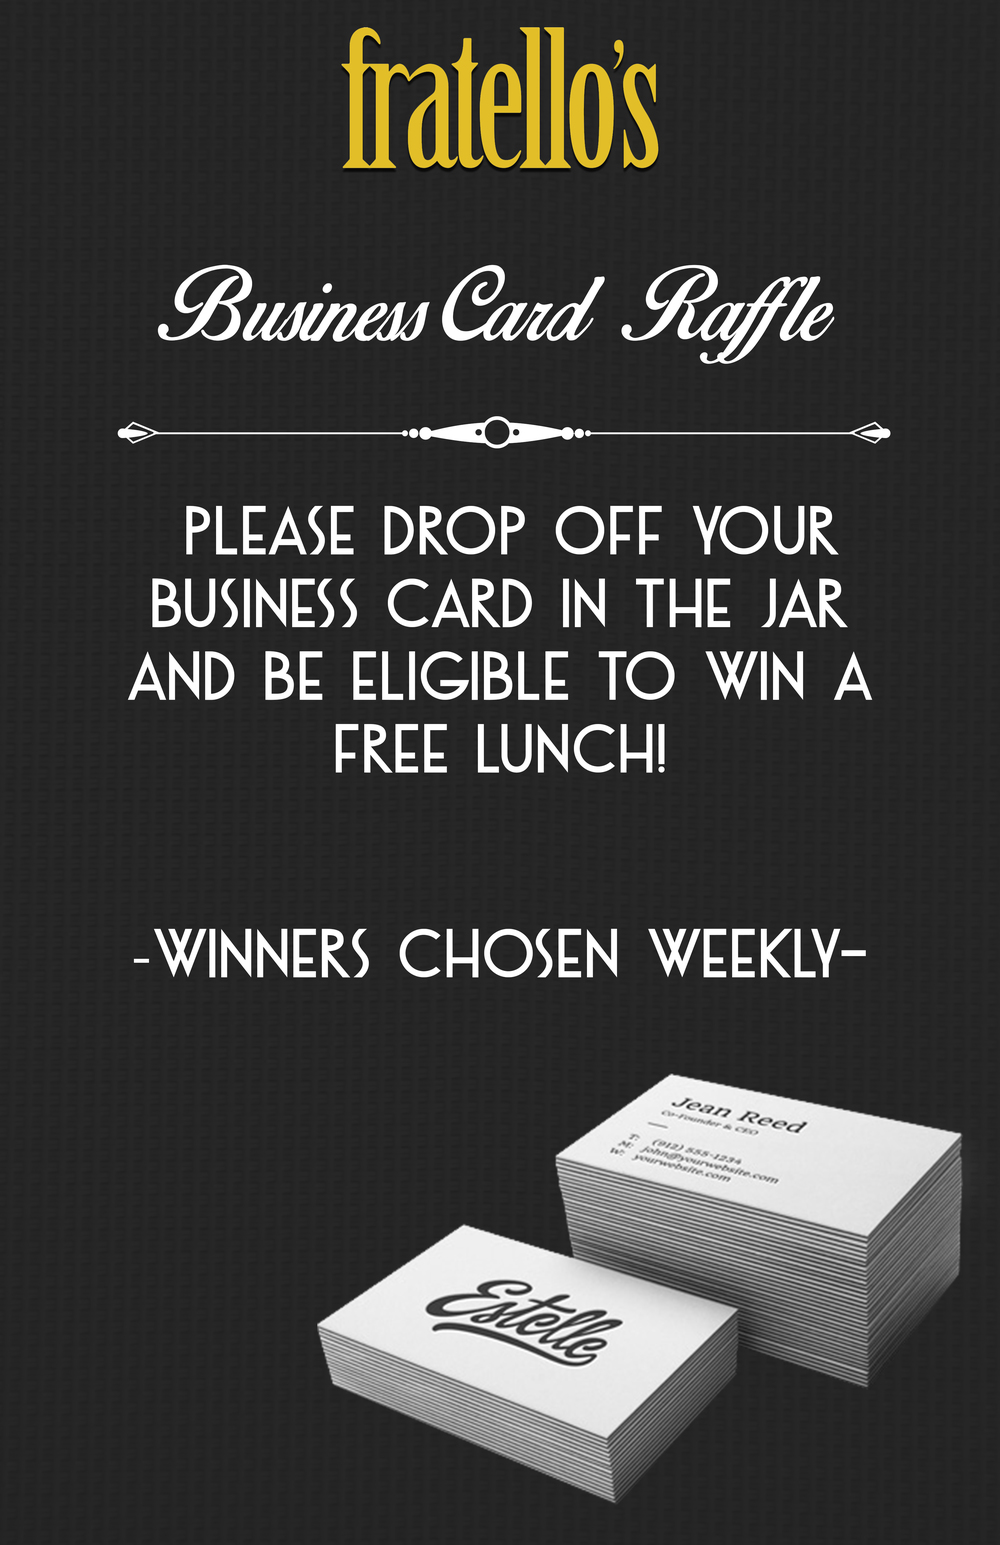 FRATELLOS Businnes Card.jpg